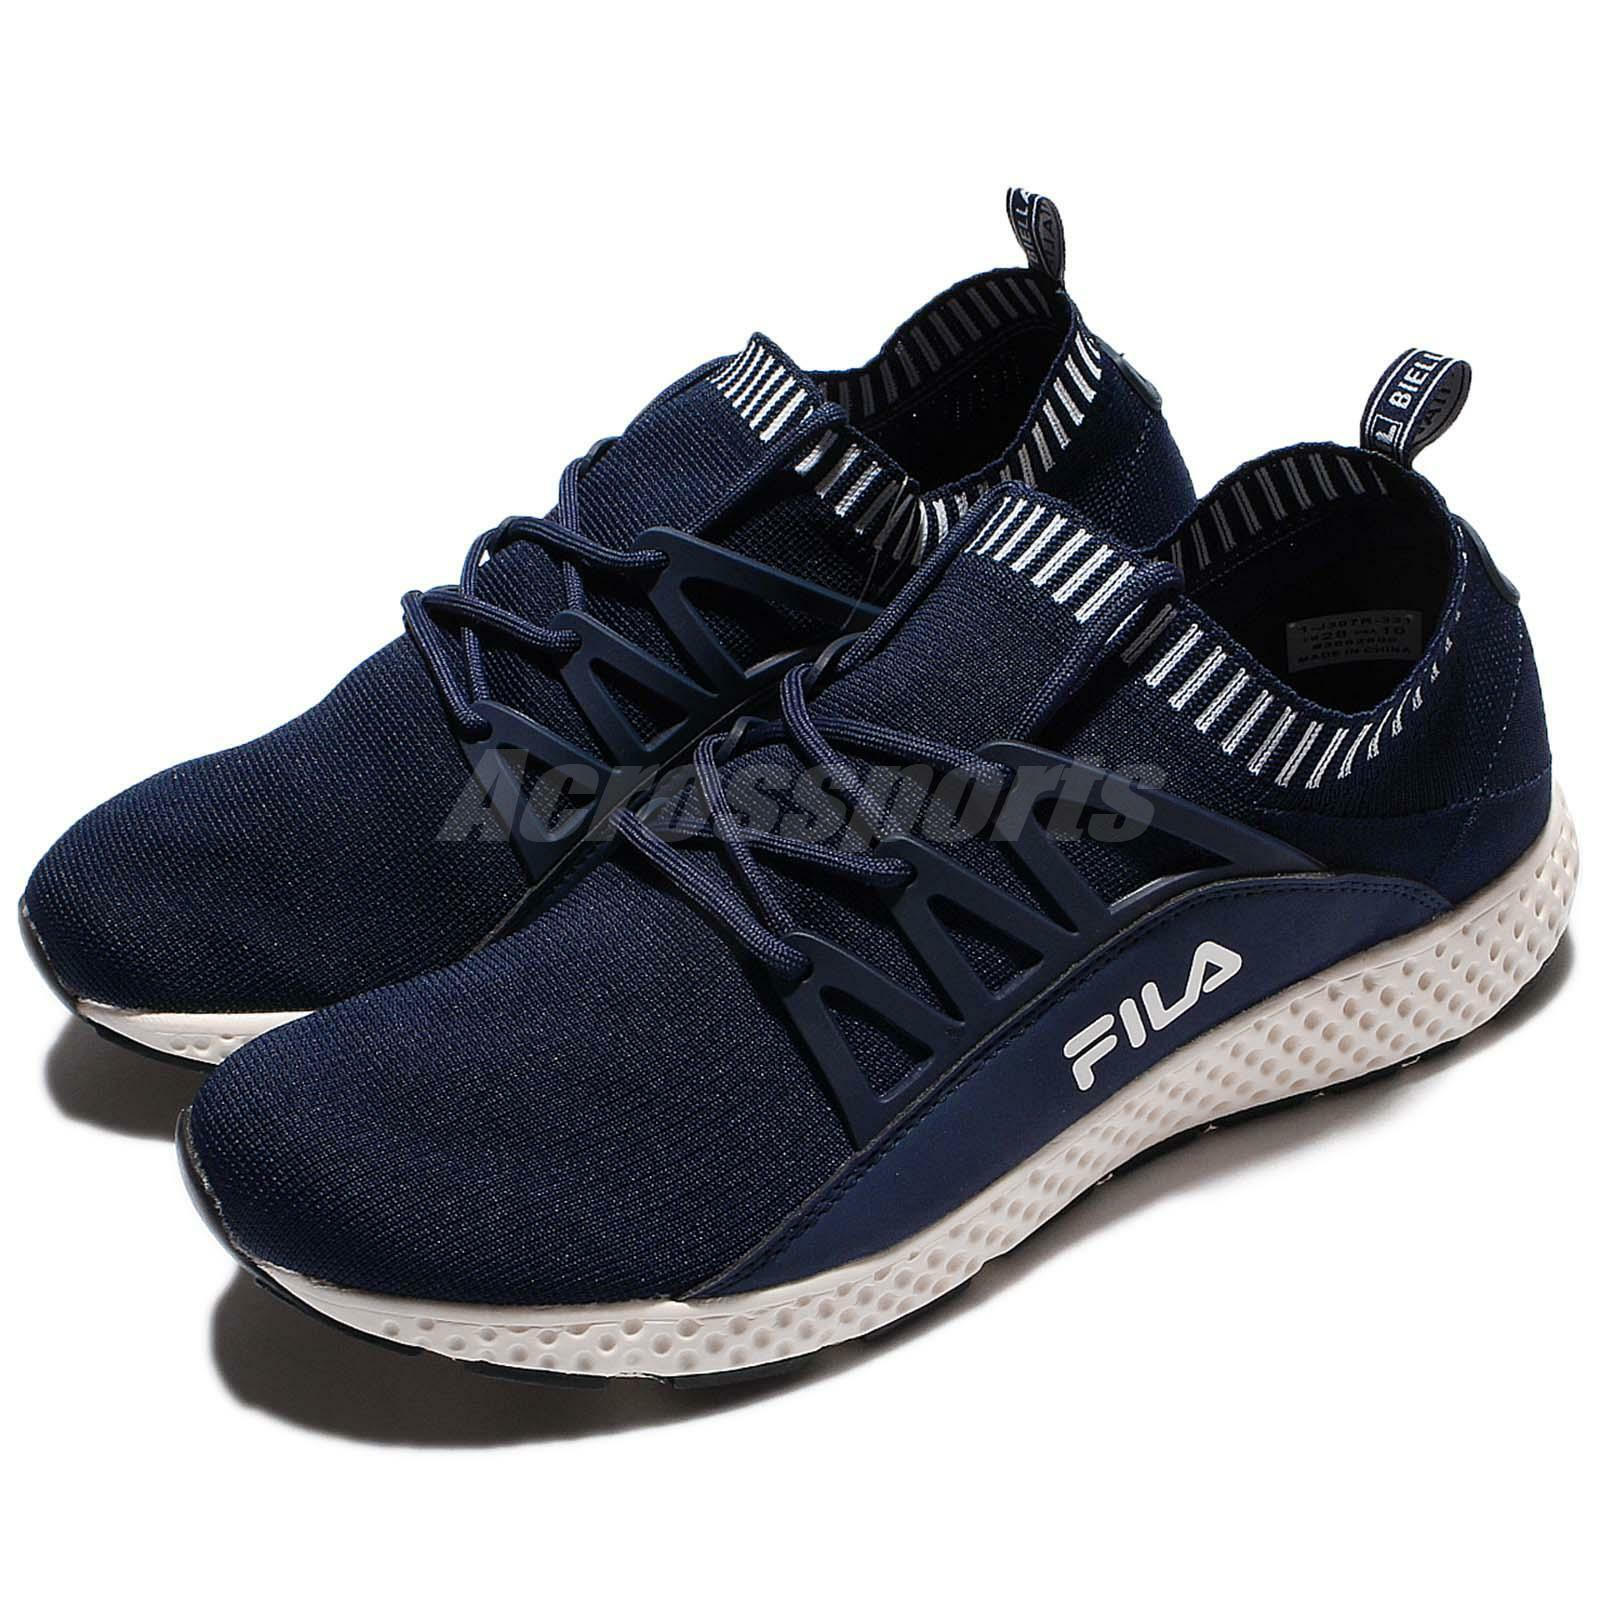 FILA J307R Navy White Men Running Shoes Slip-On Sneakers Trainers 1-J307R-331 The latest discount shoes for men and women